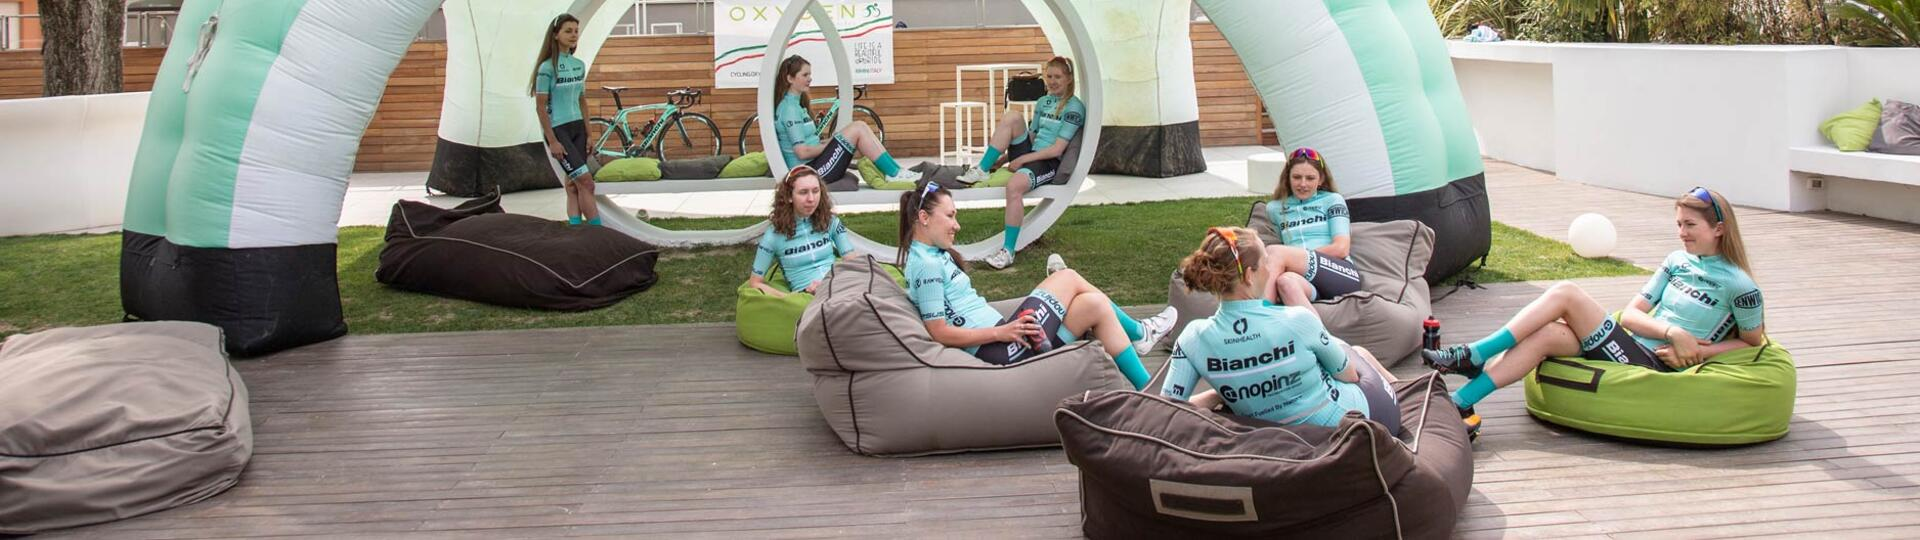 cycling.oxygenhotel it offerta-bike-tour-alla-gola-del-furlo 014